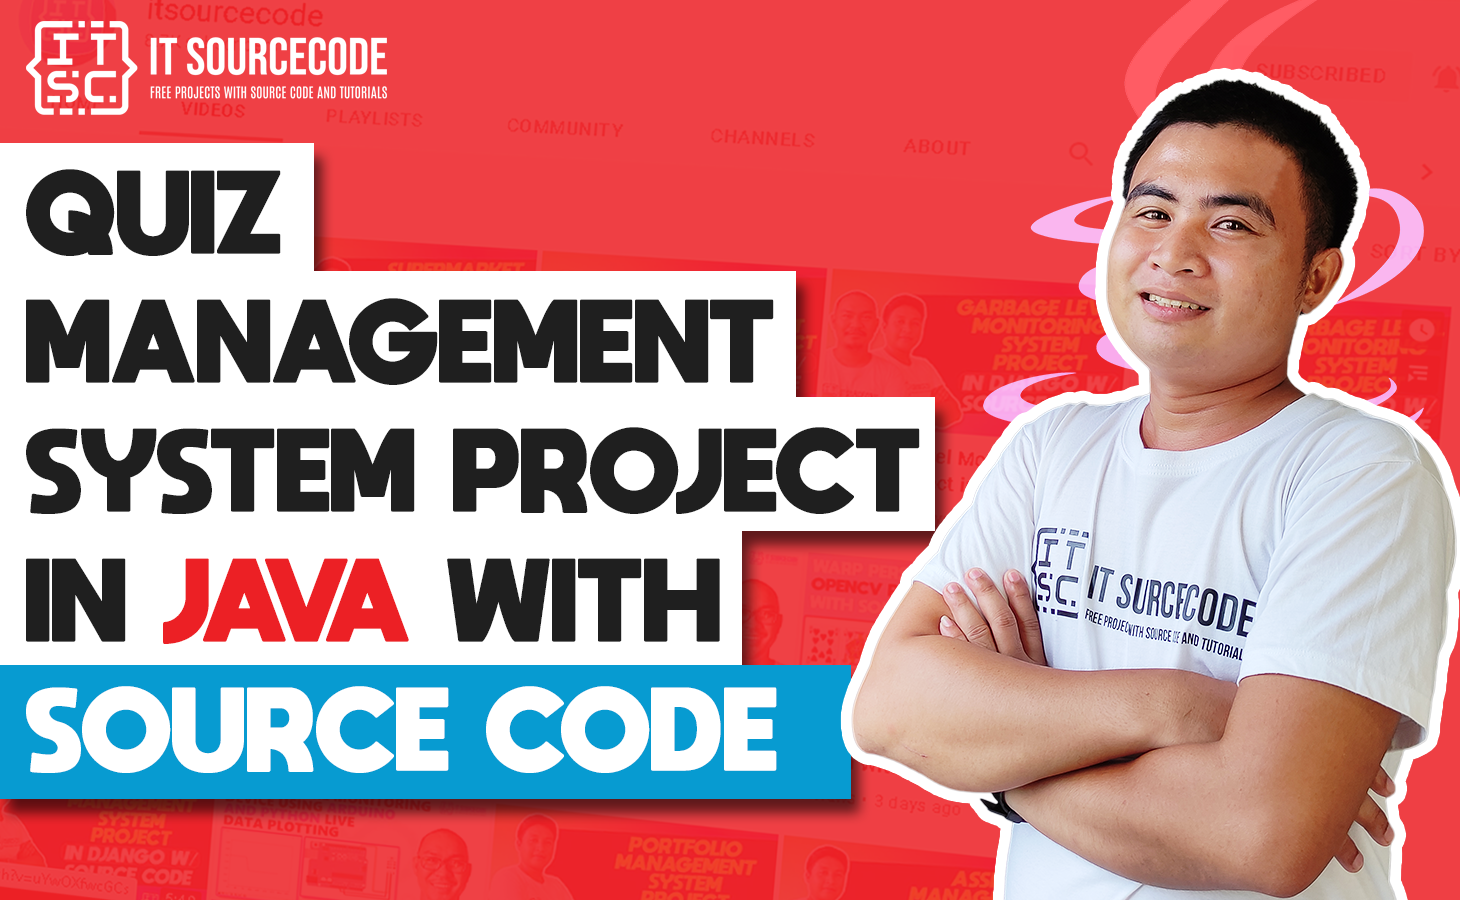 Quiz Management System Project In Java With Source Code